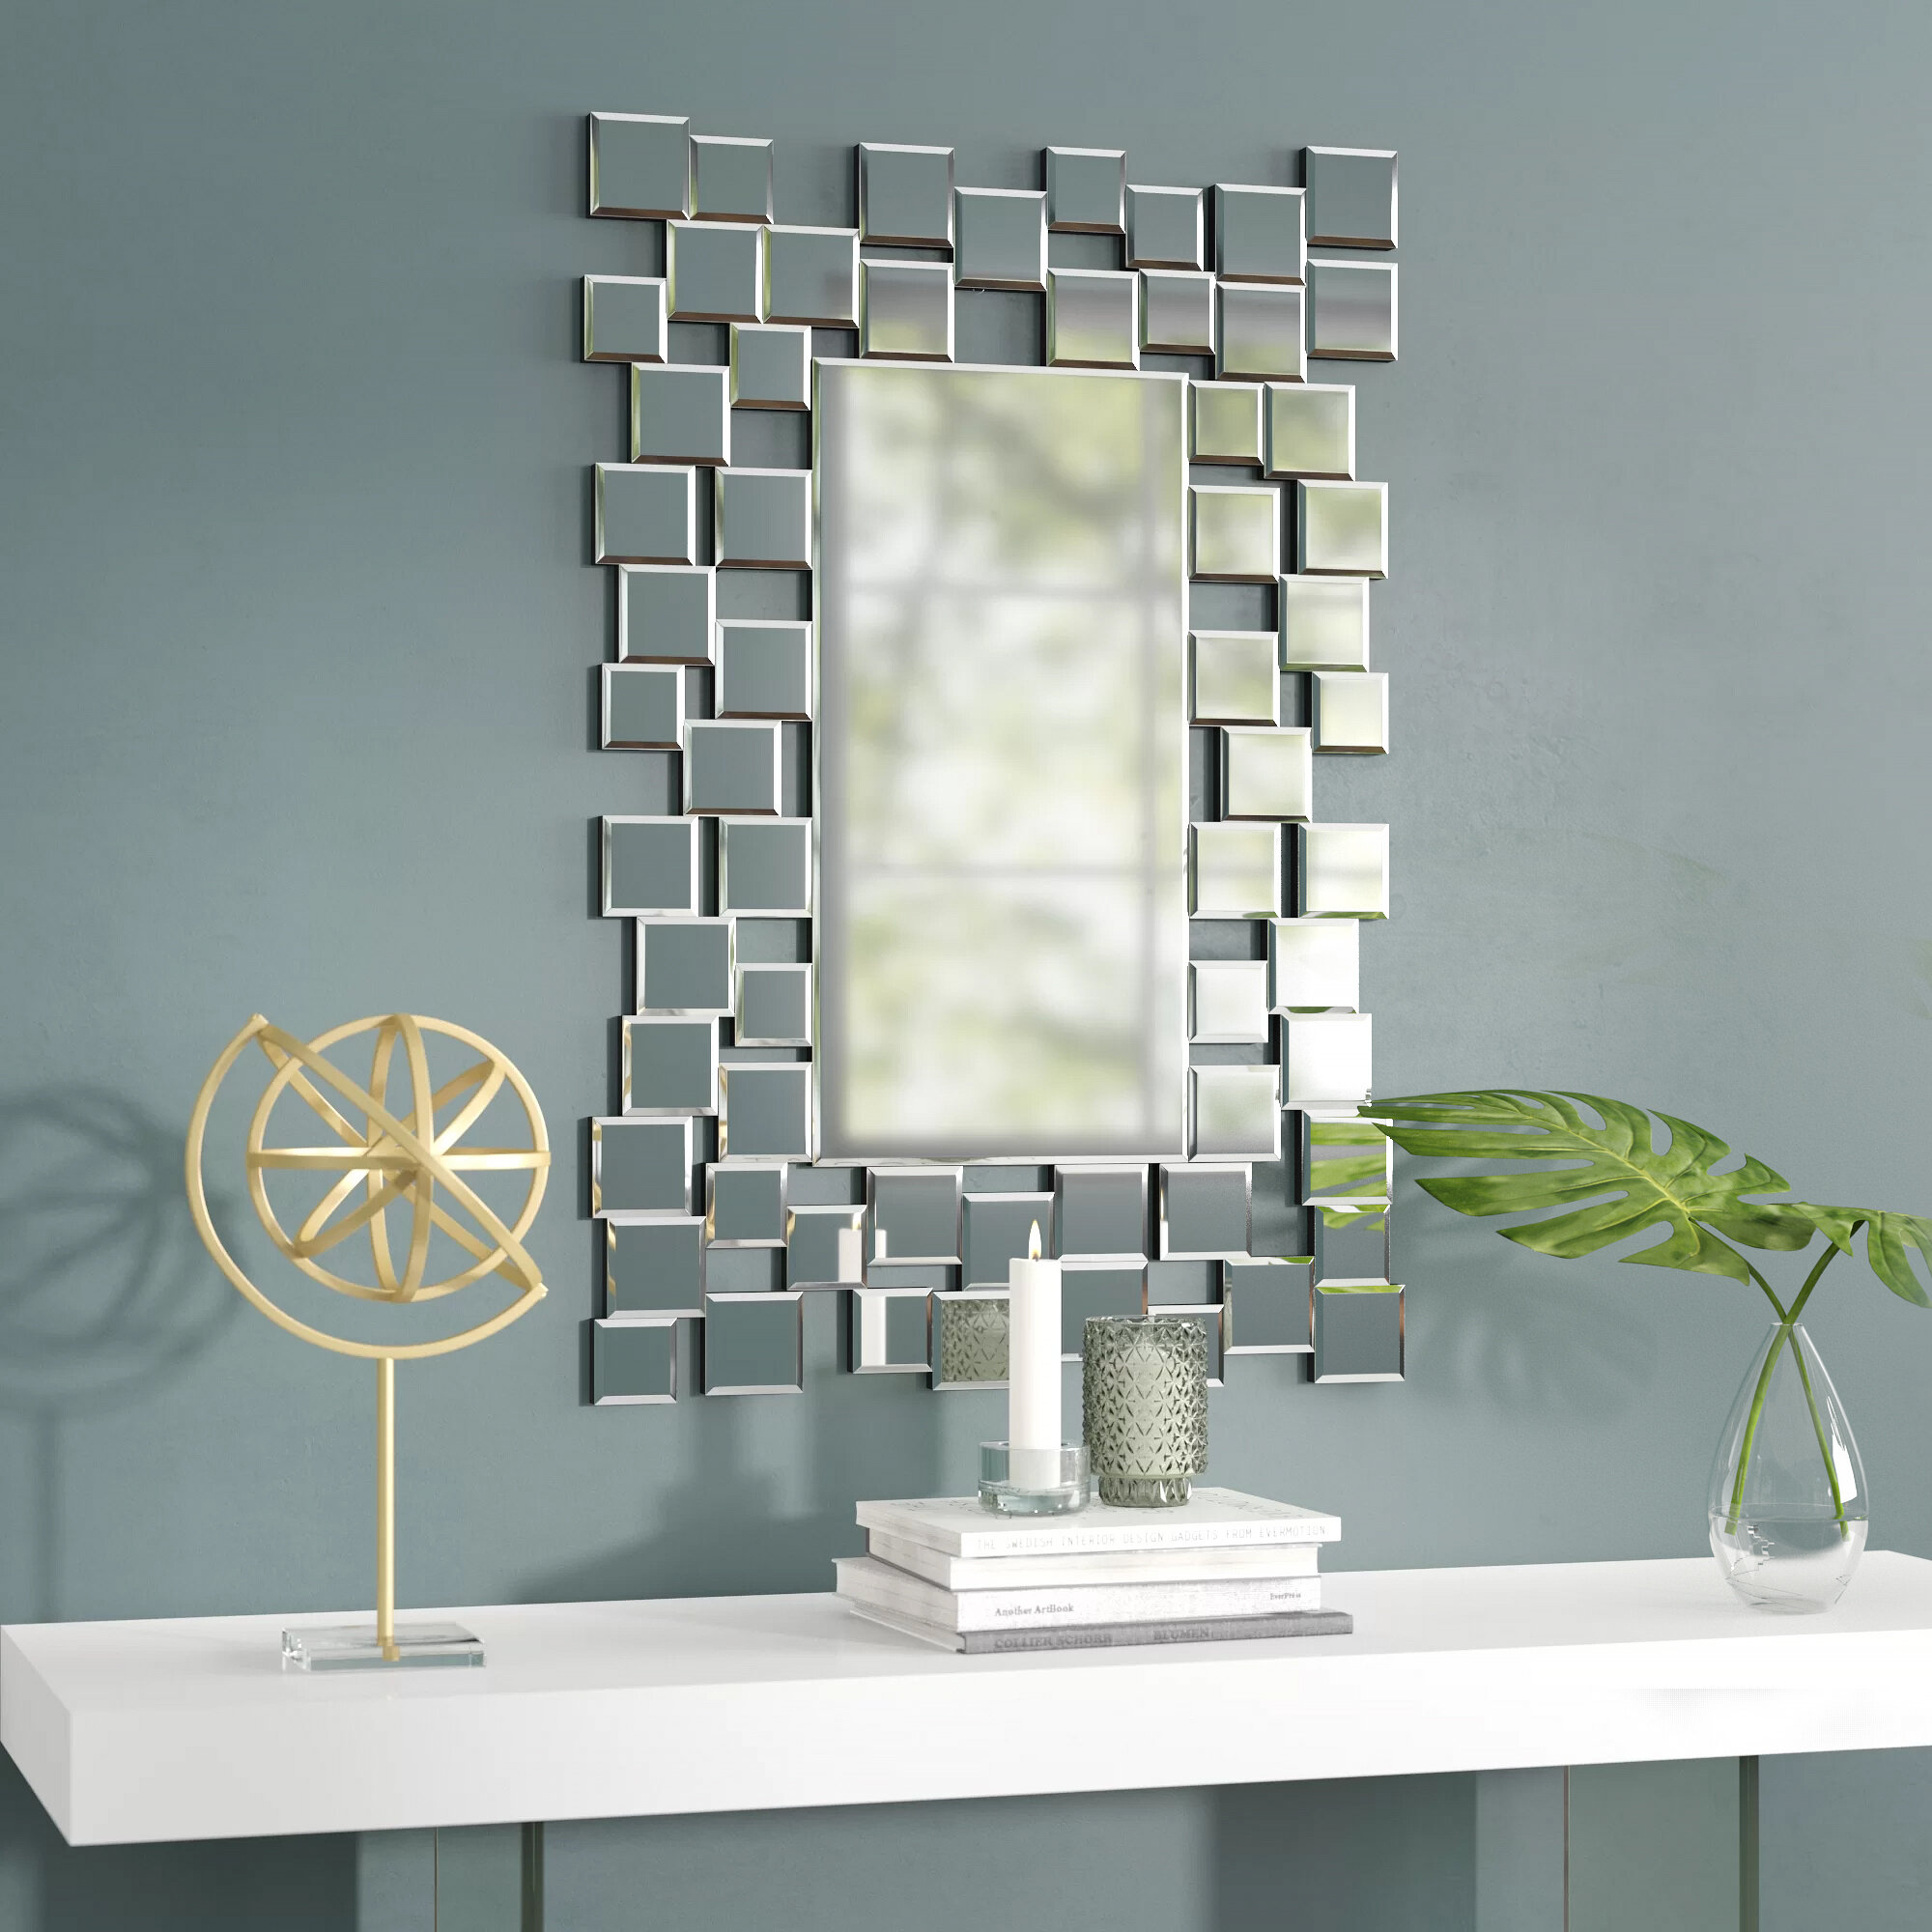 Broadmeadow Accent Wall Mirror | Wayfair Intended For Tellier Accent Wall Mirrors (Image 4 of 20)